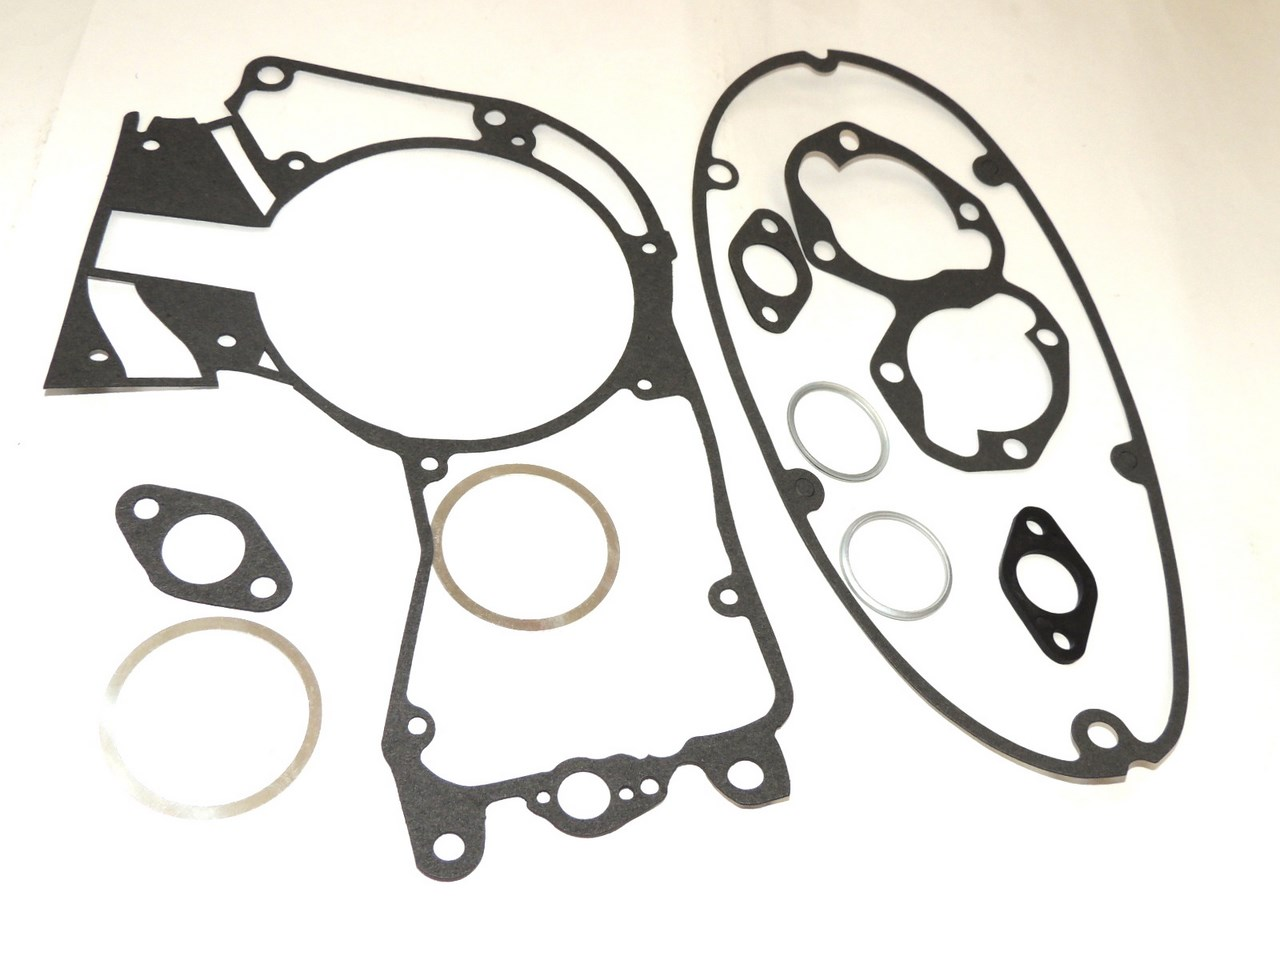 Engine gaskets, set - JAWA 350 Kyvacka